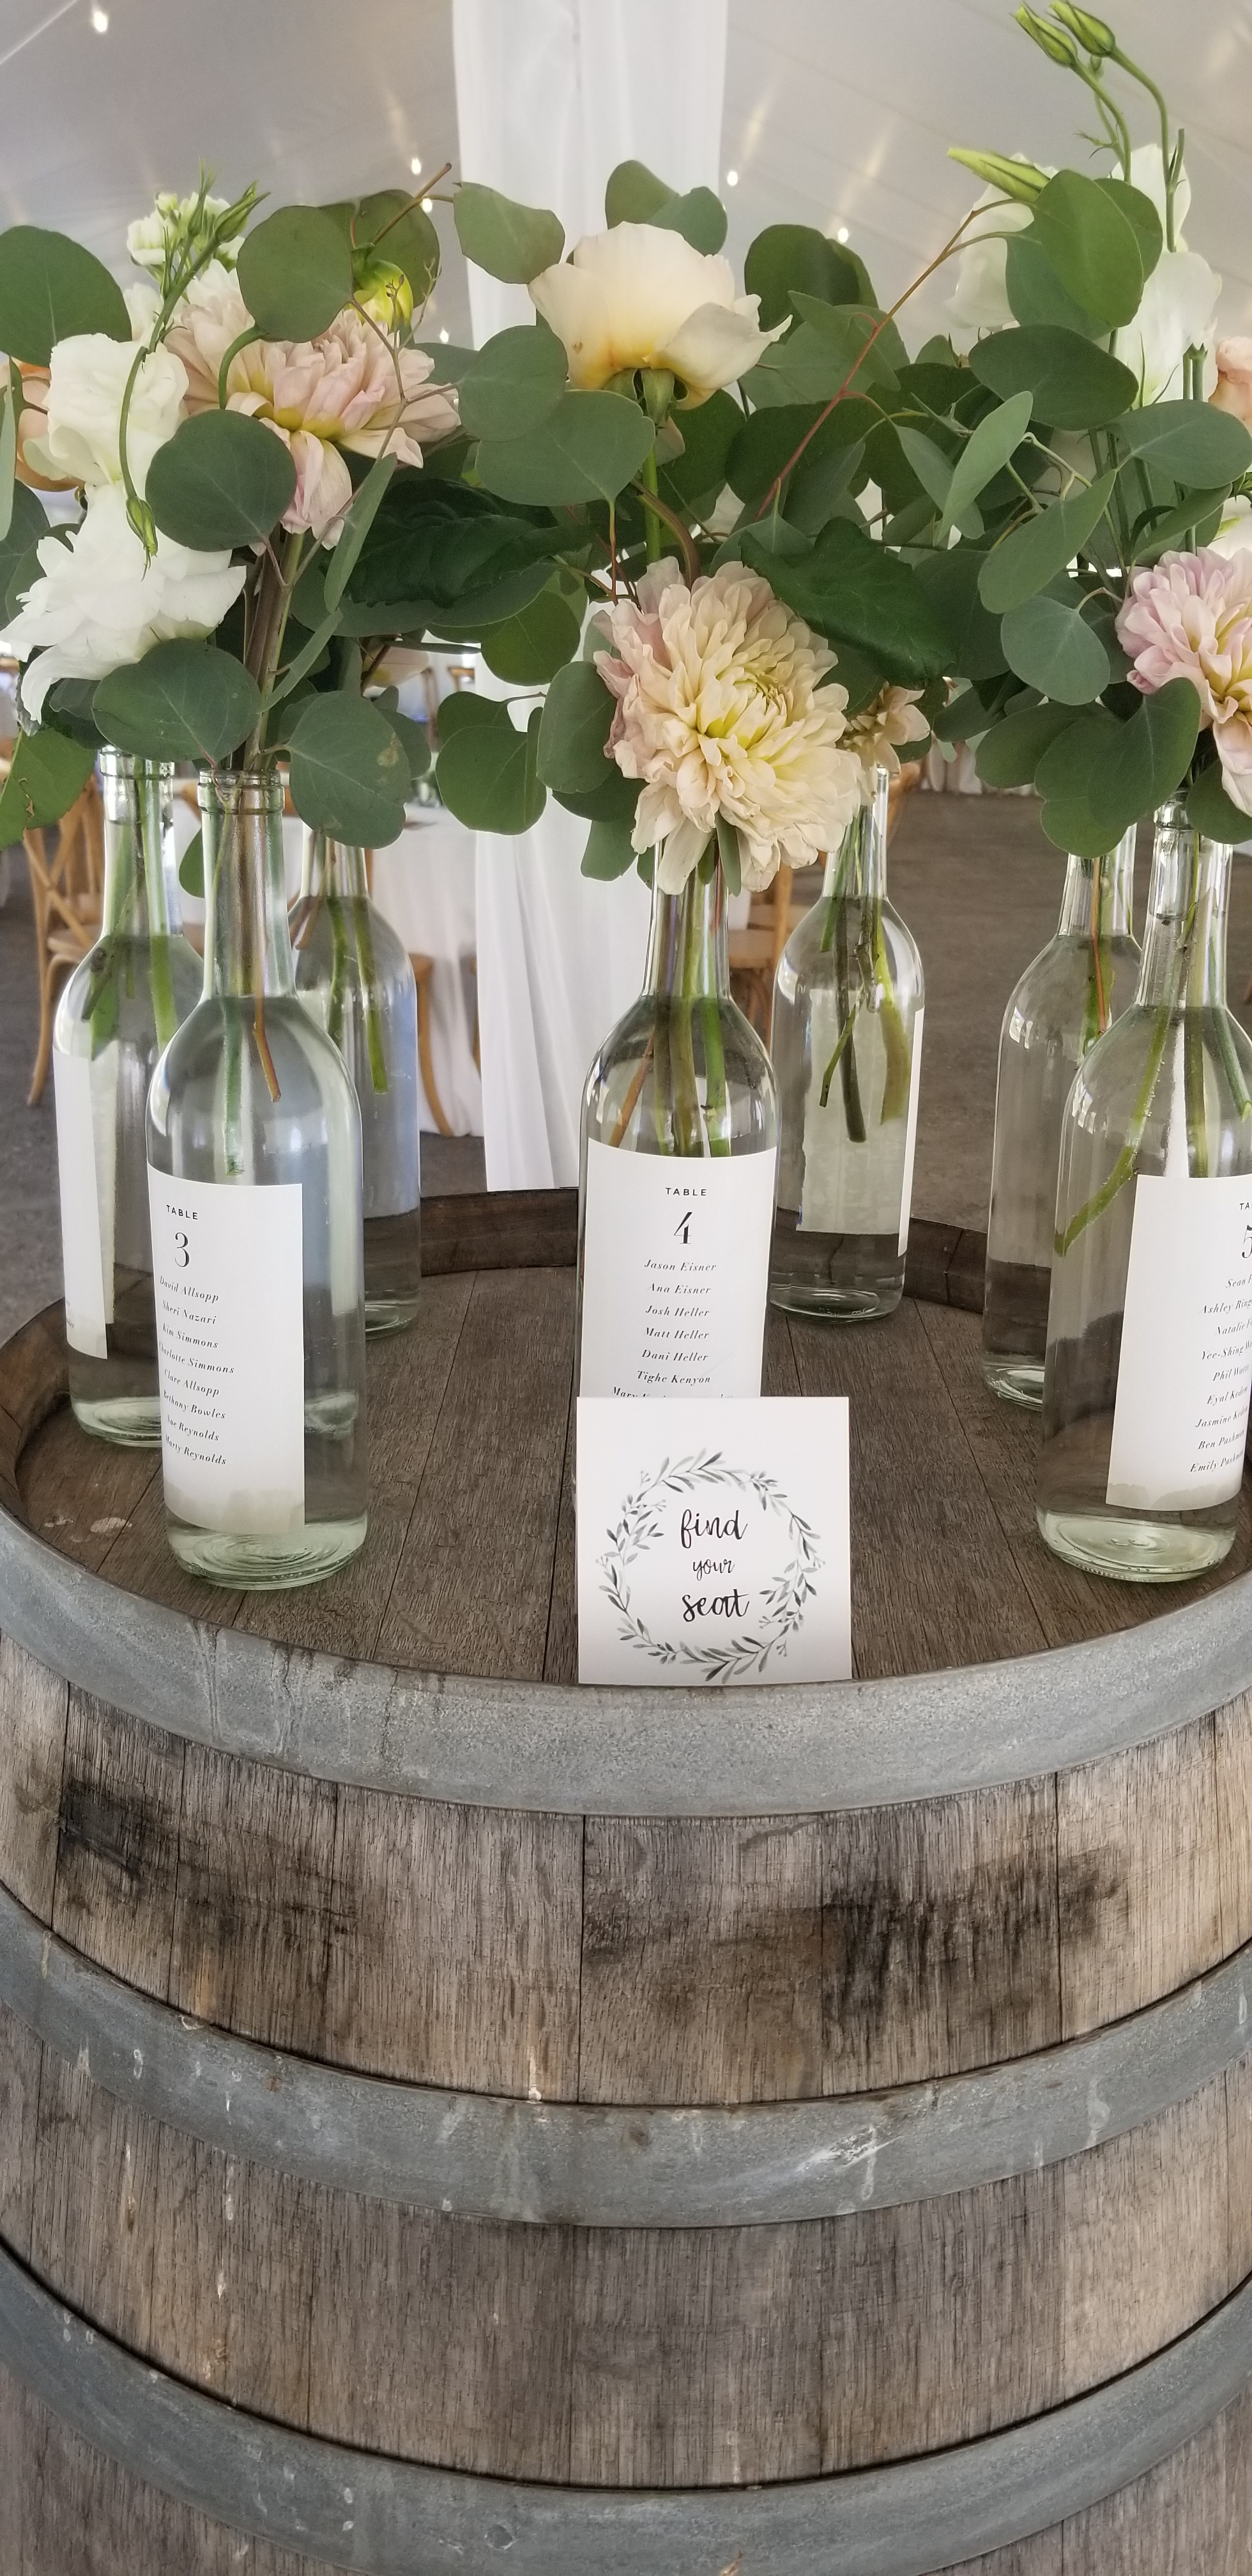 Seating chart presented in wine bottles with lush floral.